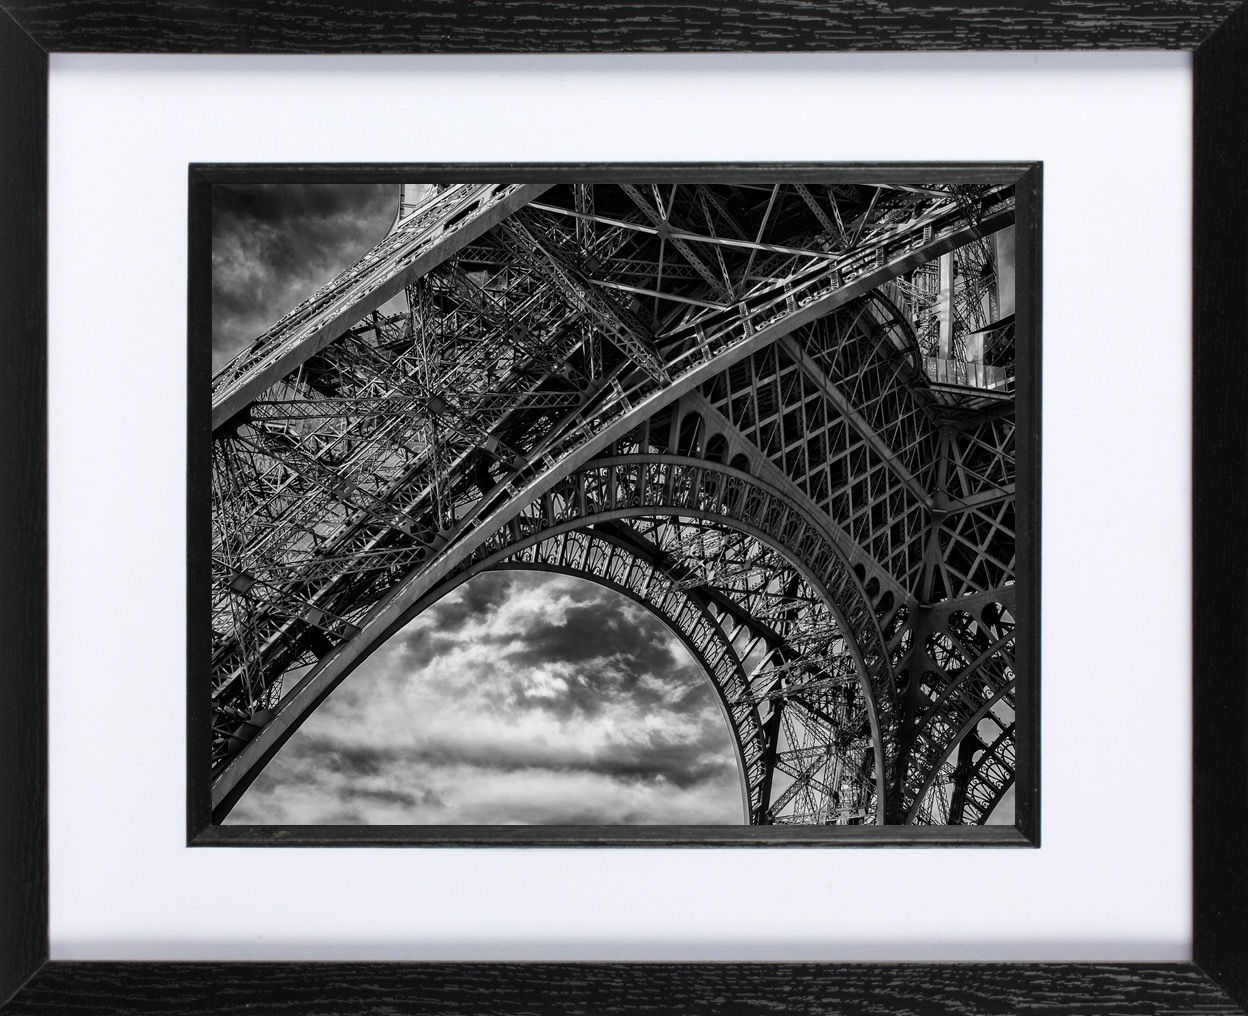 'I love my Eiffel Tower picture' - I was told about JimDeanPhotography when speaking to a colleague about my daughter's obsession with Paris. My friend said she'd seen some great images of Paris, and other countries at a photography exhibition in Edinburgh. I found out who had the exhibition and as soon as I saw the images on his site I had to have some. I've now got two incredible images taking pride of place in my home.Gillian Hallard, Edinburgh